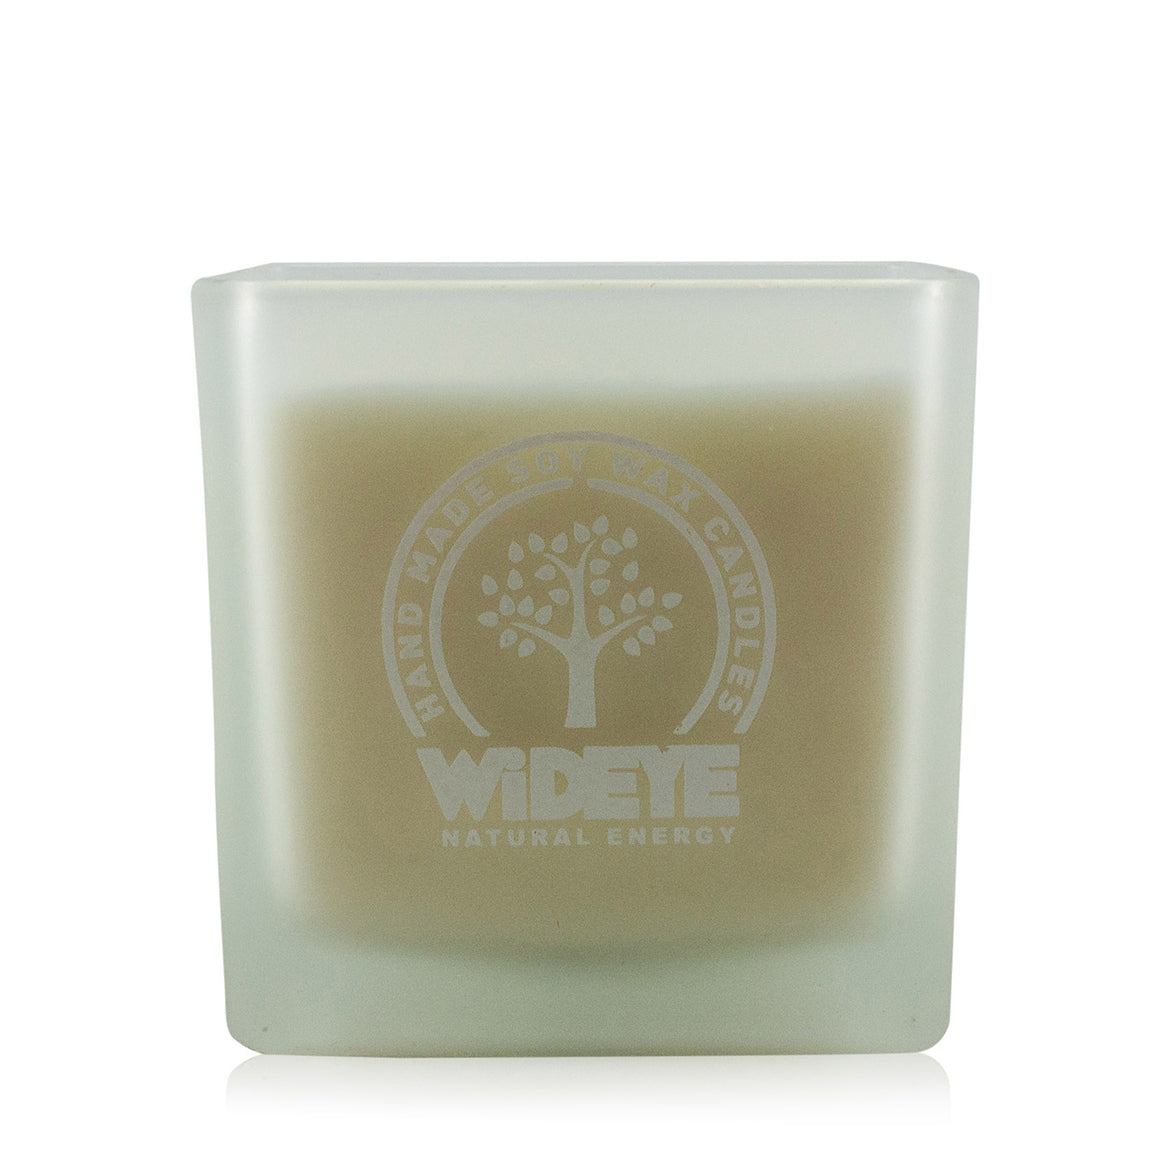 Natural vegan soy wax Lavender & Vetiver scented candle in large frosted glass jar handmade by WiDEYE in Rye.